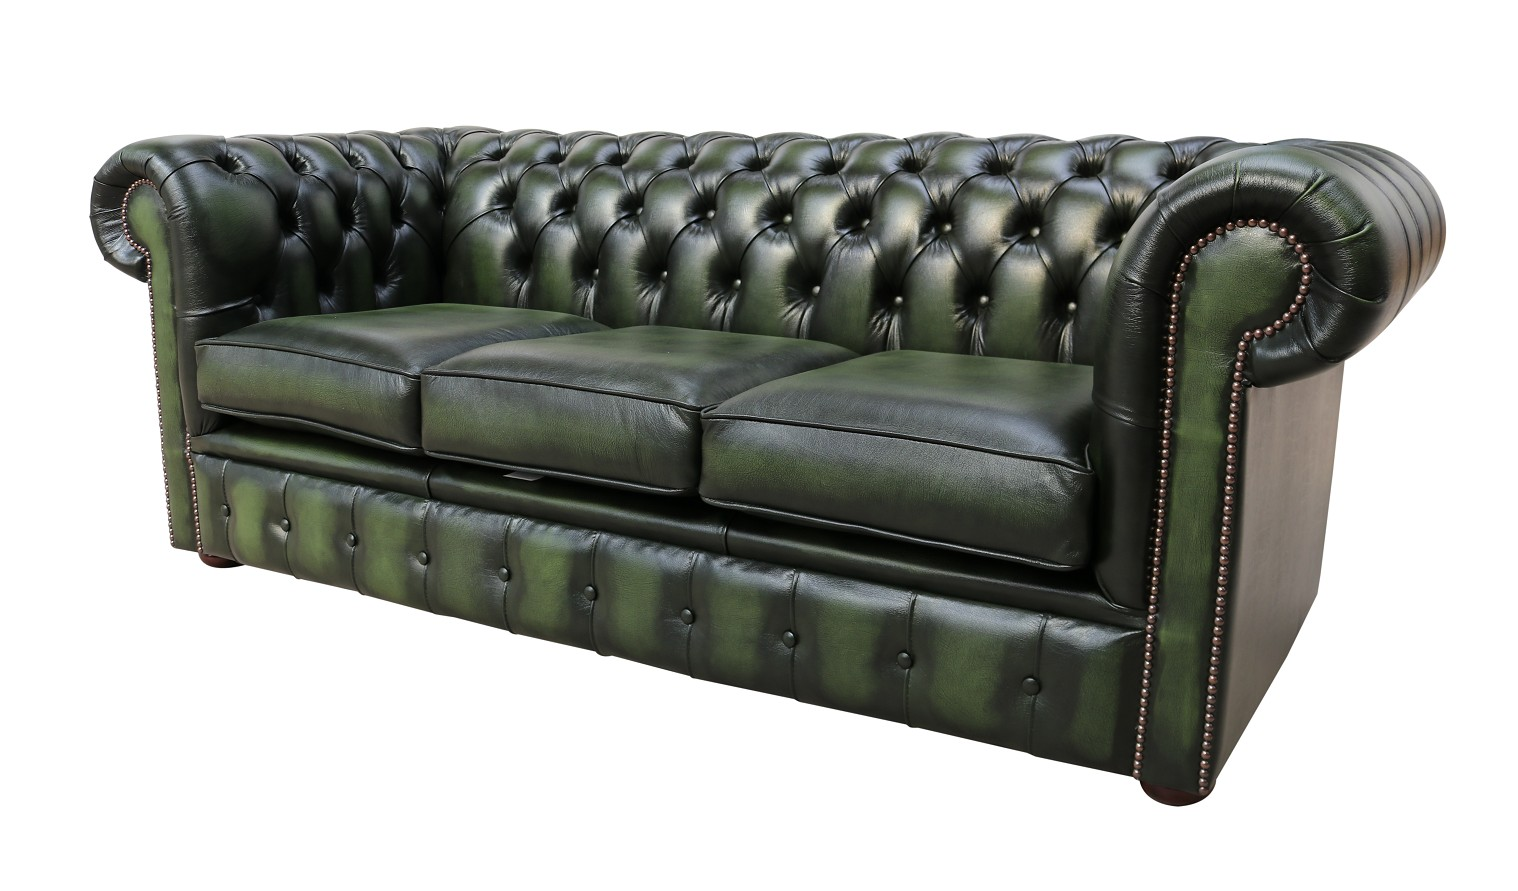 Antique Green Leather Chesterfield 3 Seater sofa ...